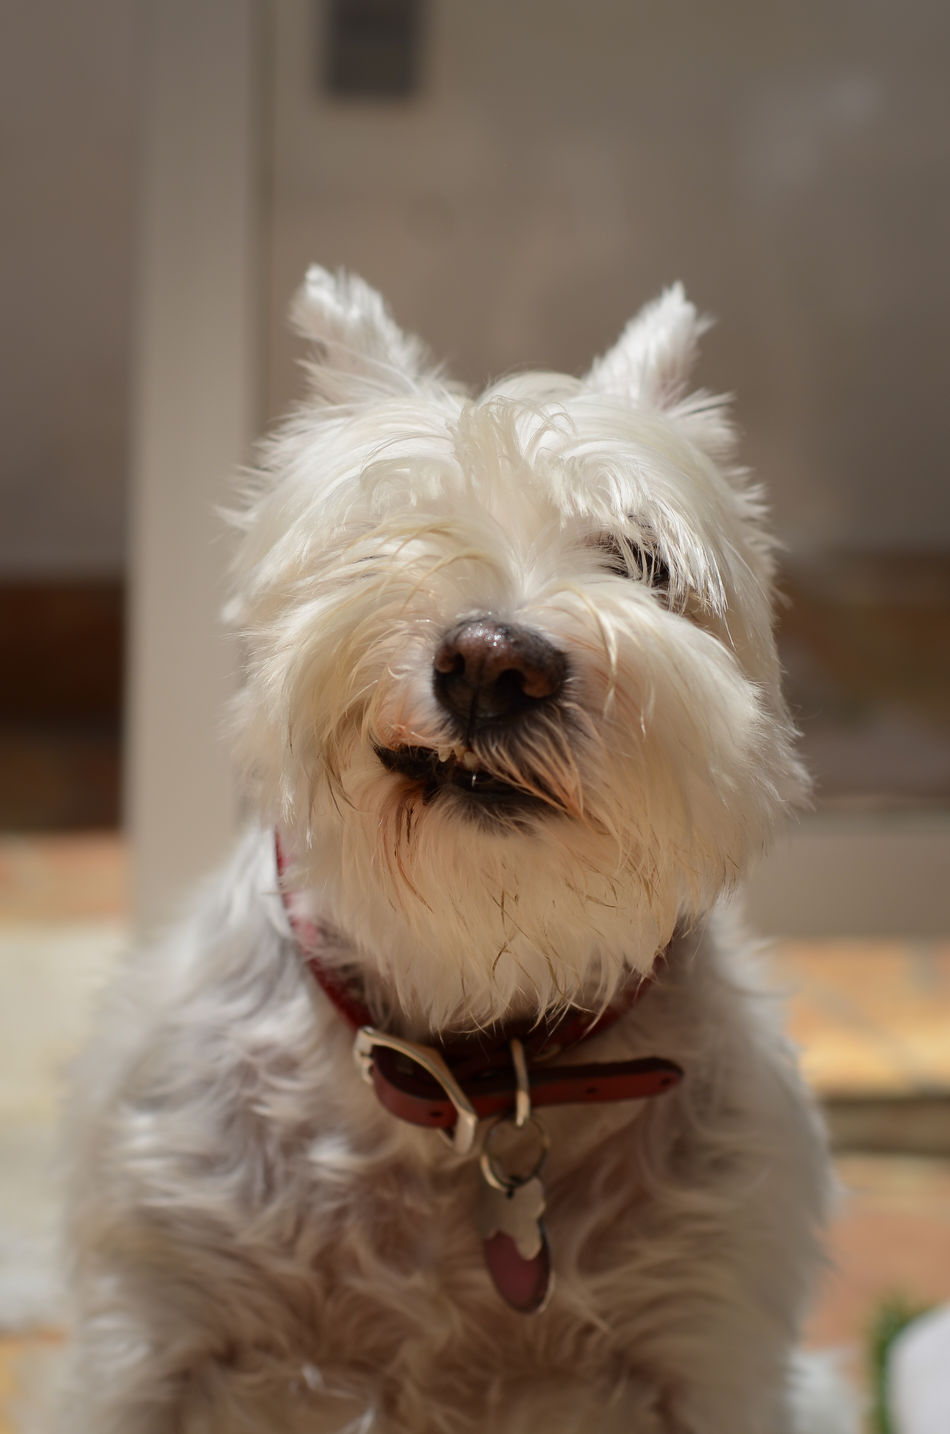 Lovely day wtih my princess Wink, wink Animal Themes Day Dog Domestic Animals Mammal No People One Animal Outdoors Pet Clothing Pets Portrait Terrier West Highland White Terrier Wink Wink Wink ;)